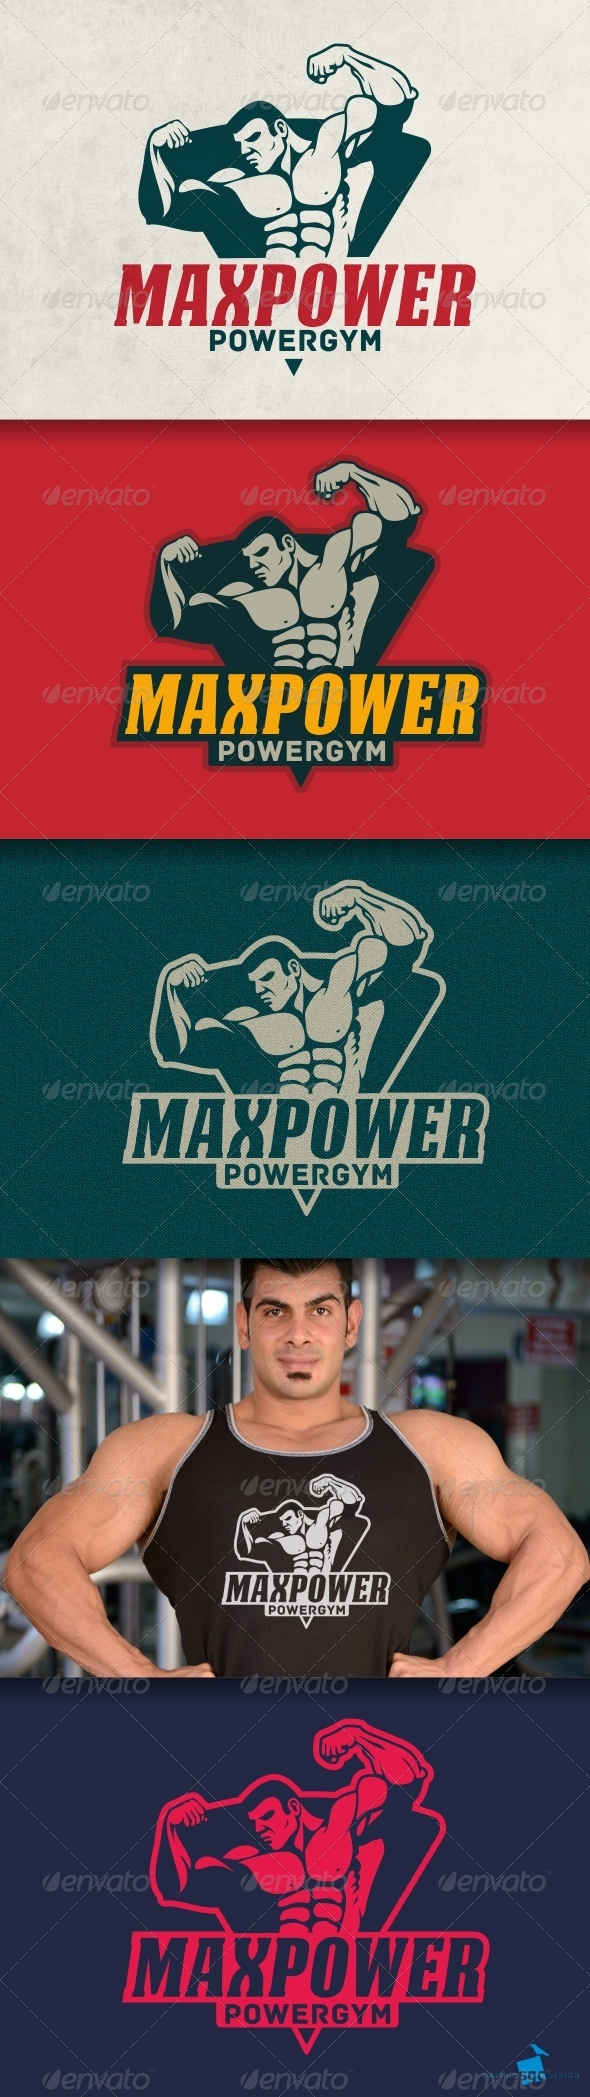 GraphicRiver Powergym Logo 8046156